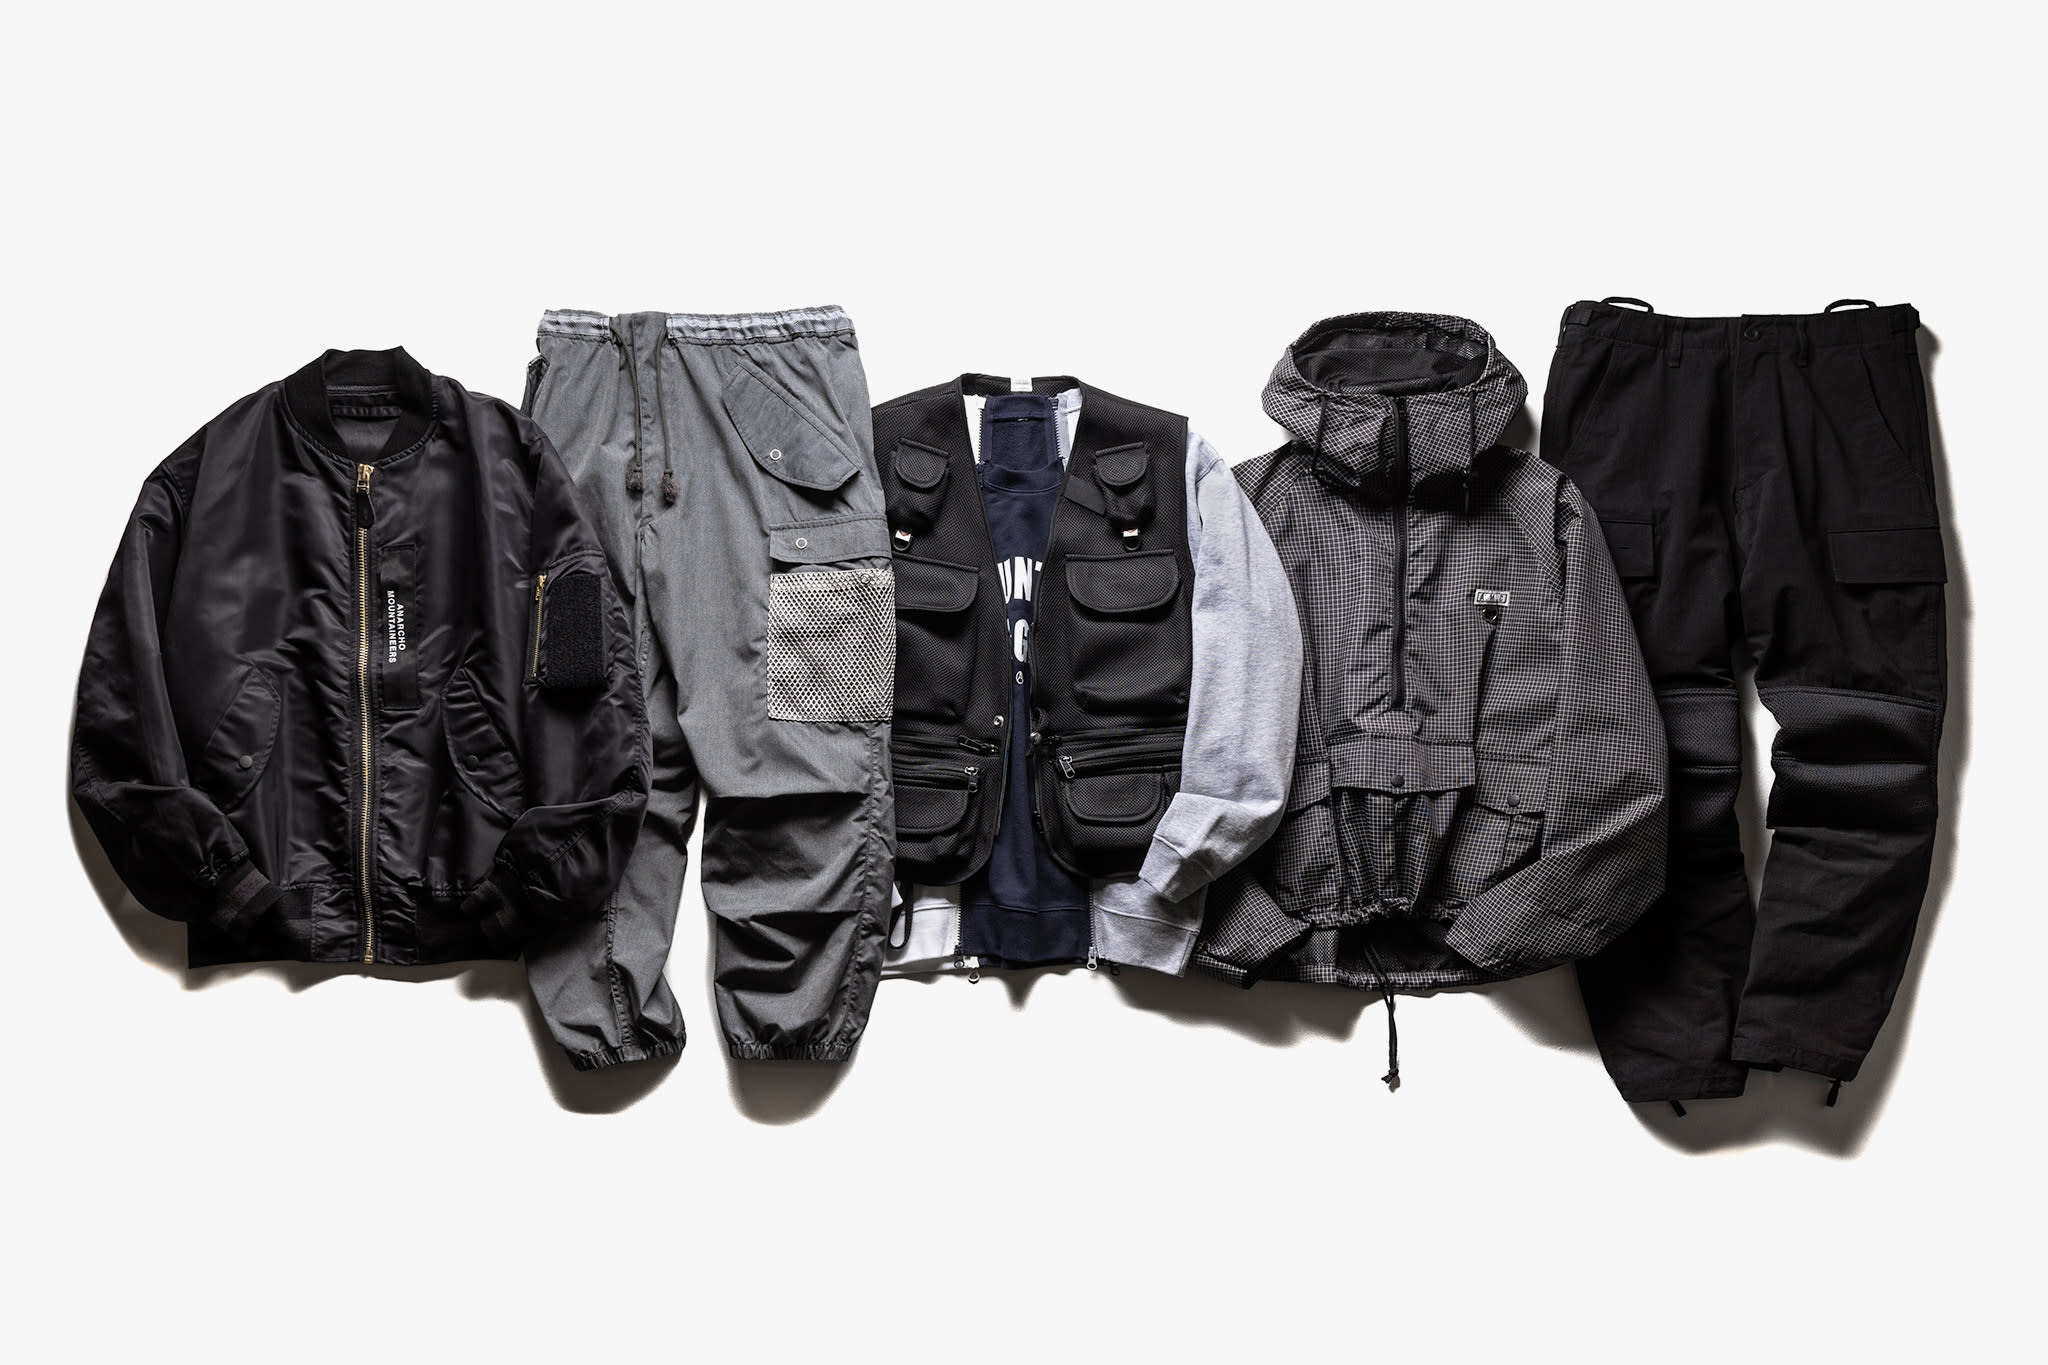 HAVEN Mountain Research SS20 Collection